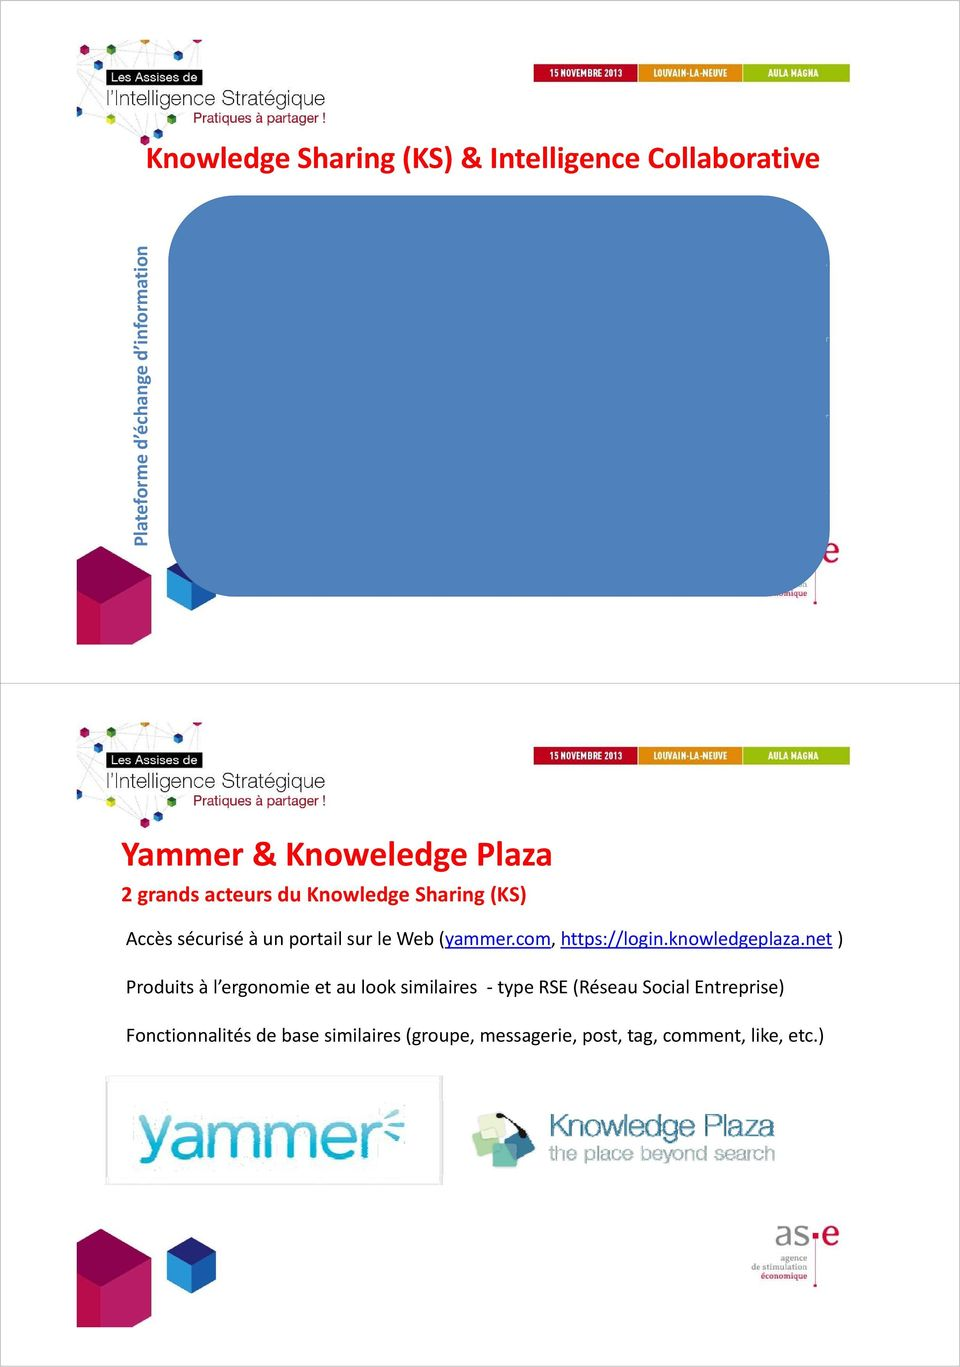 (yammer.com, https://login.knowledgeplaza.